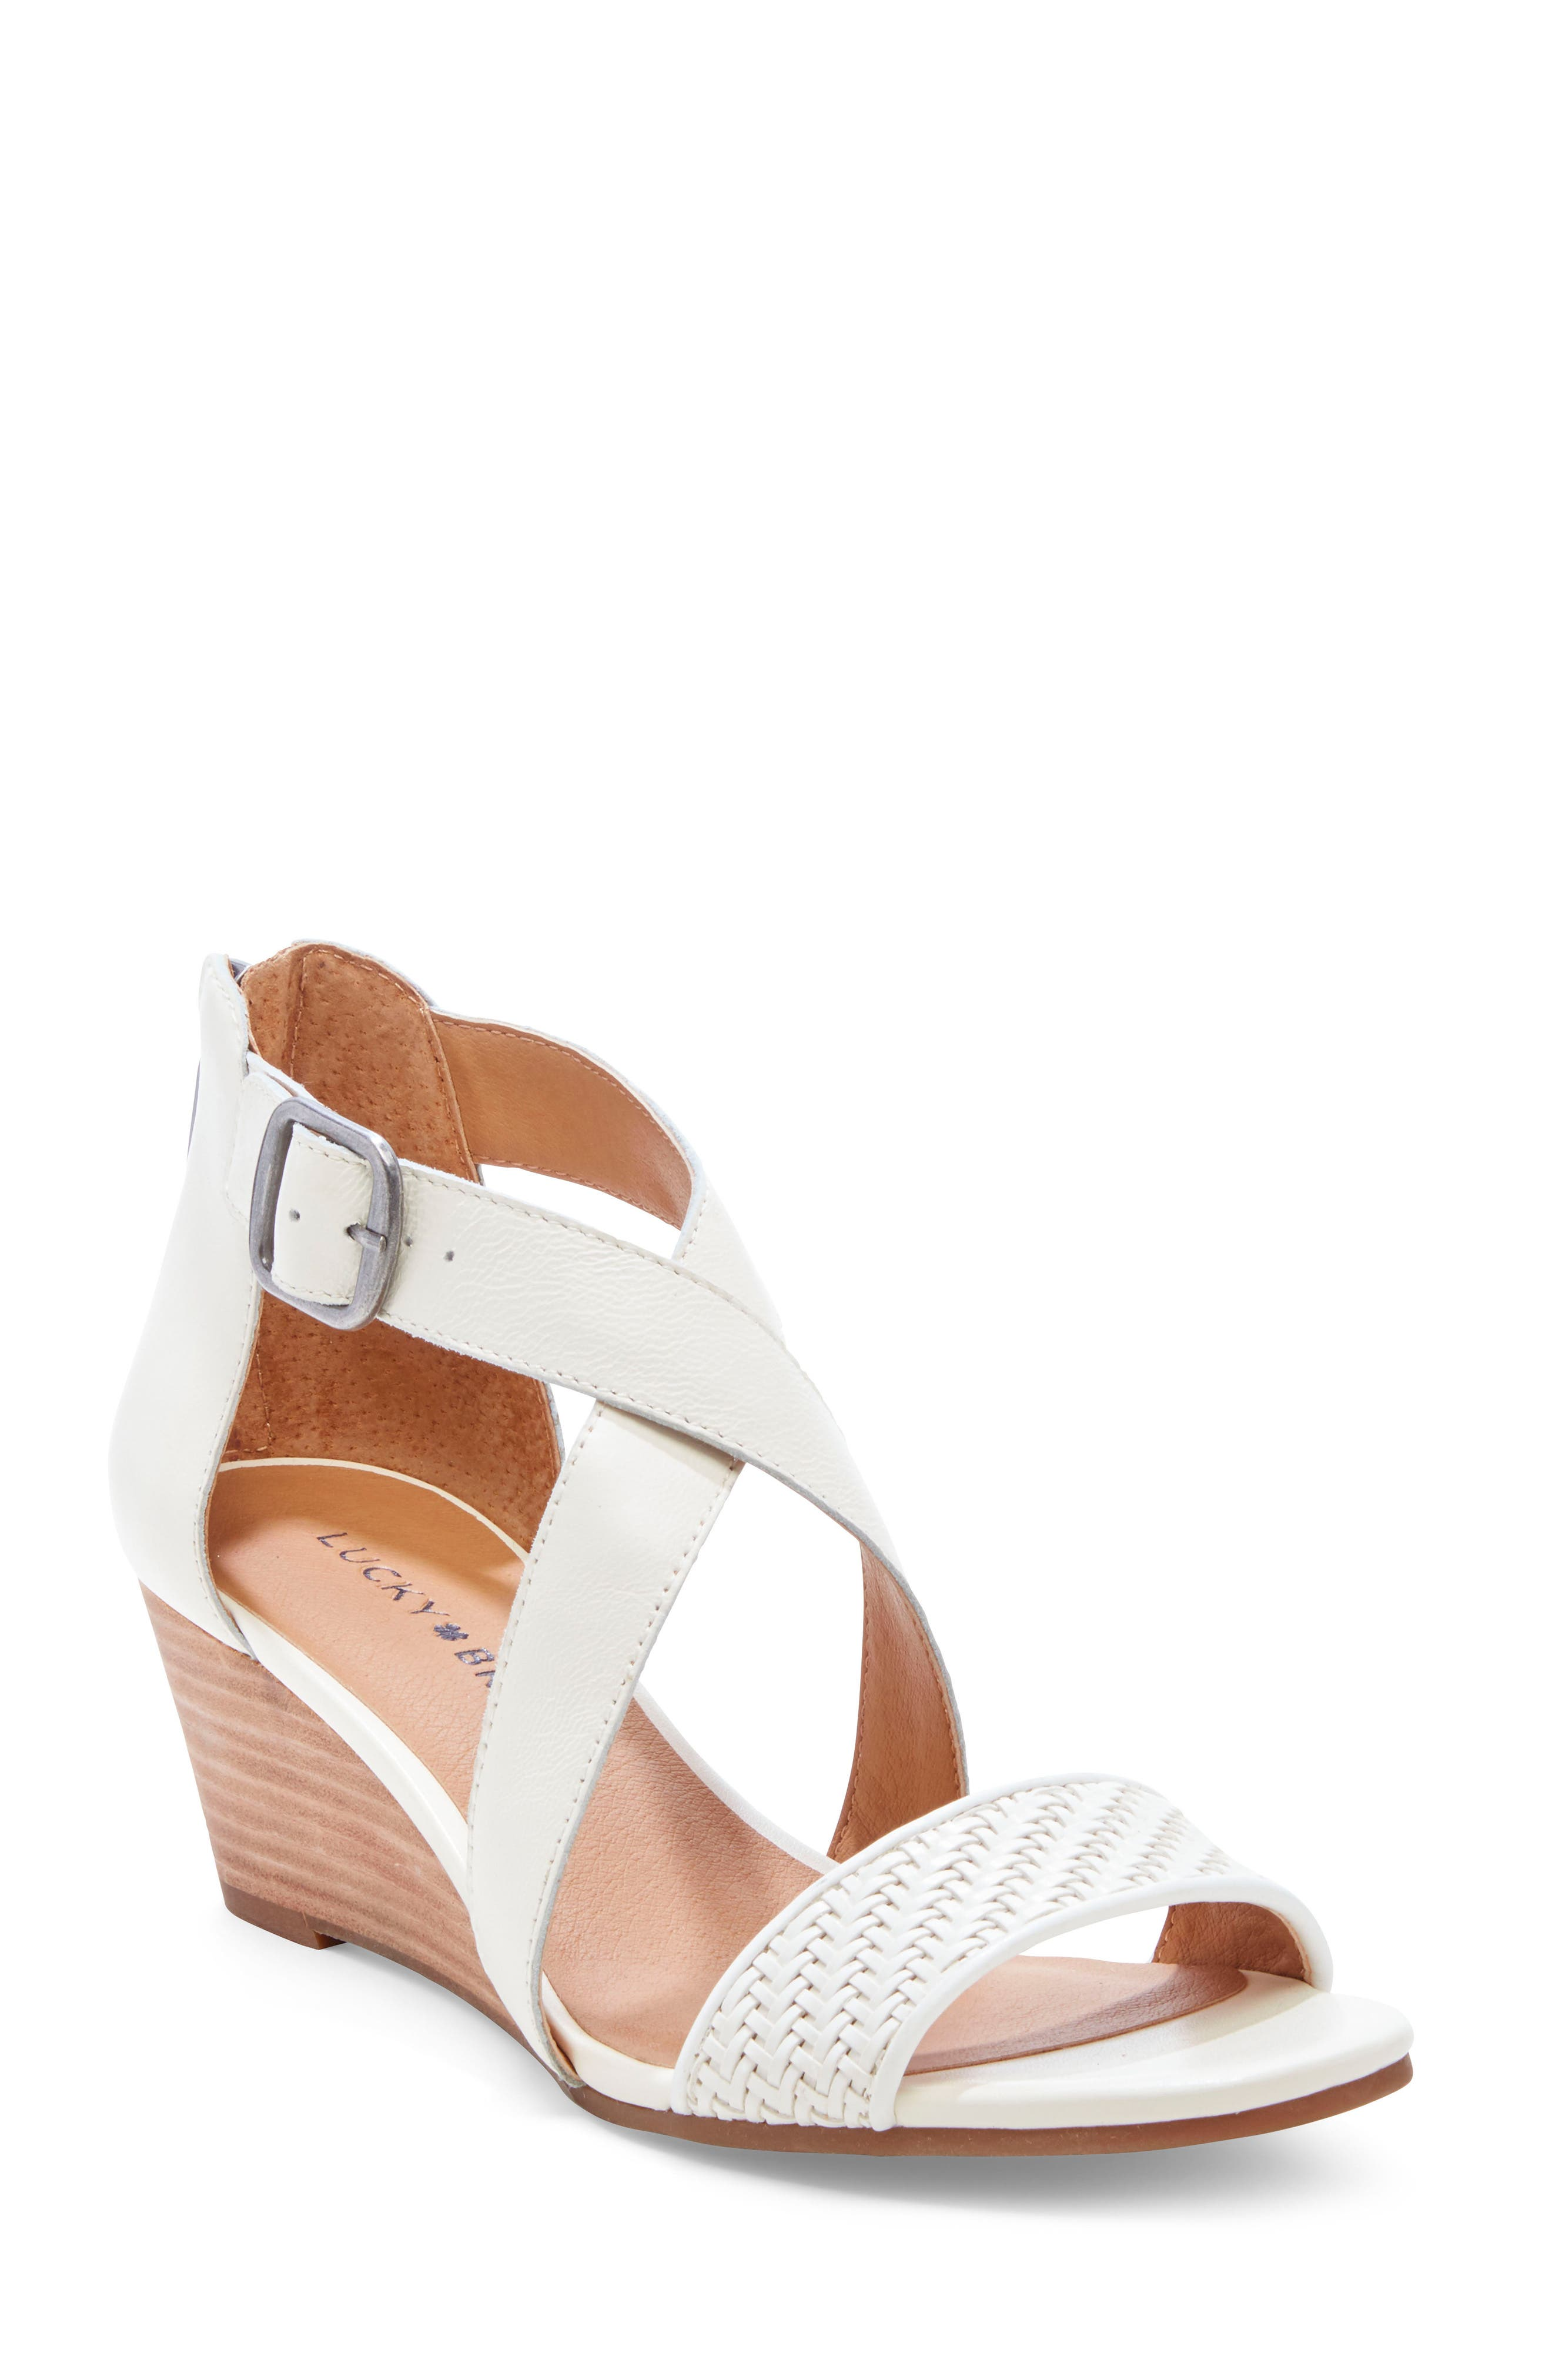 ,                             Jestah Wedge Sandal,                             Main thumbnail 1, color,                             MILK LEATHER